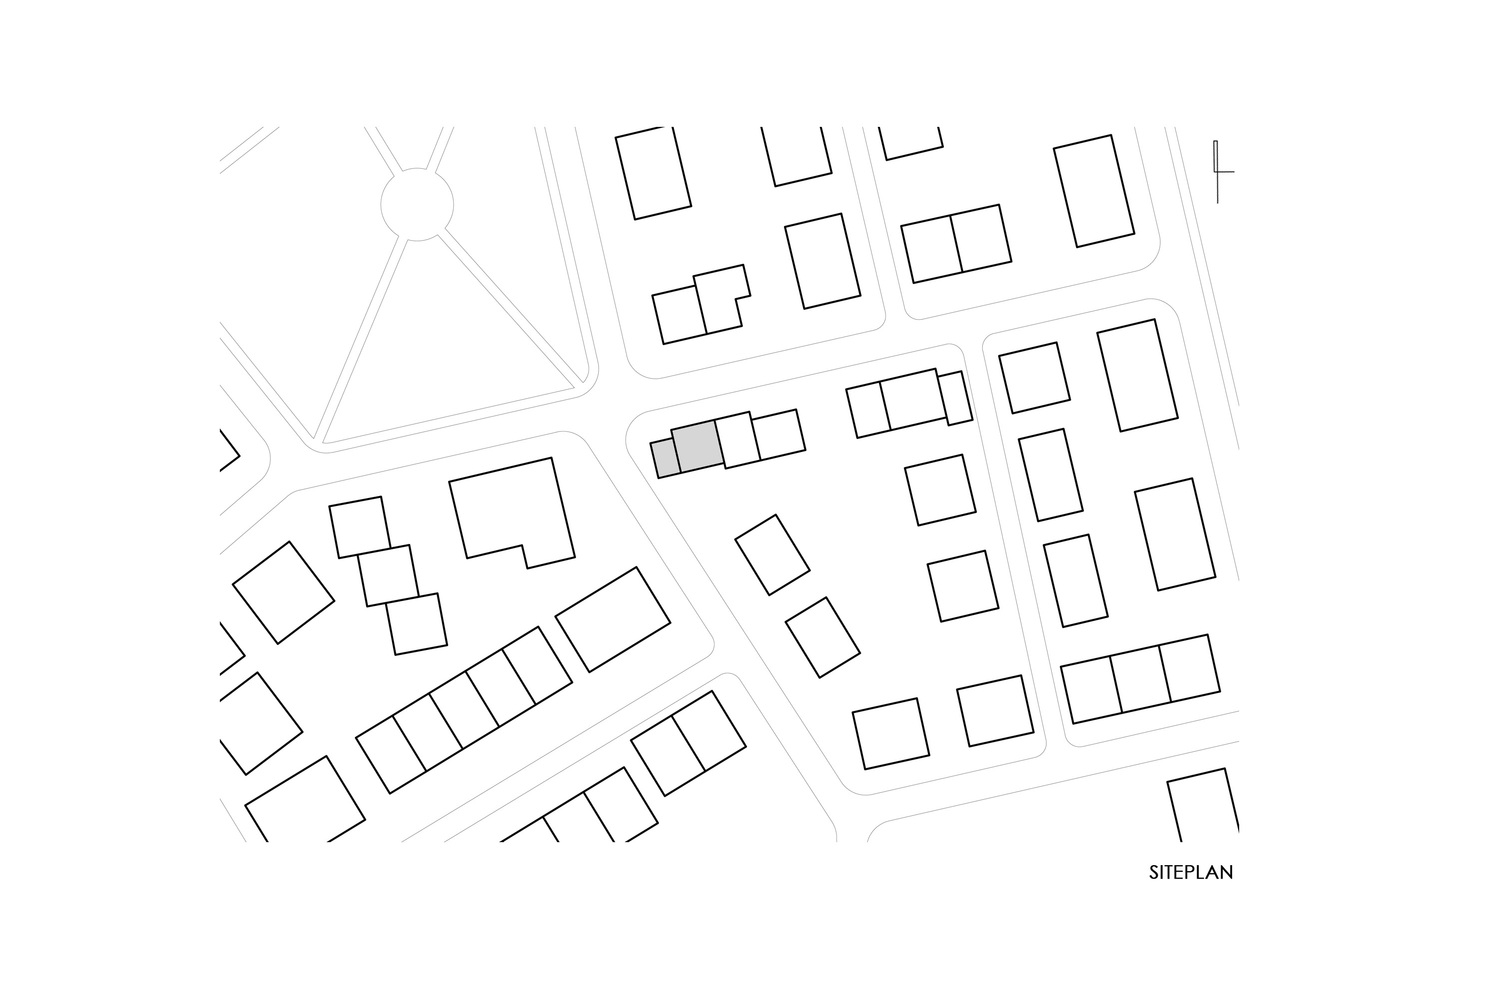 House_for_W_by_MFRMGR_siteplan.jpg